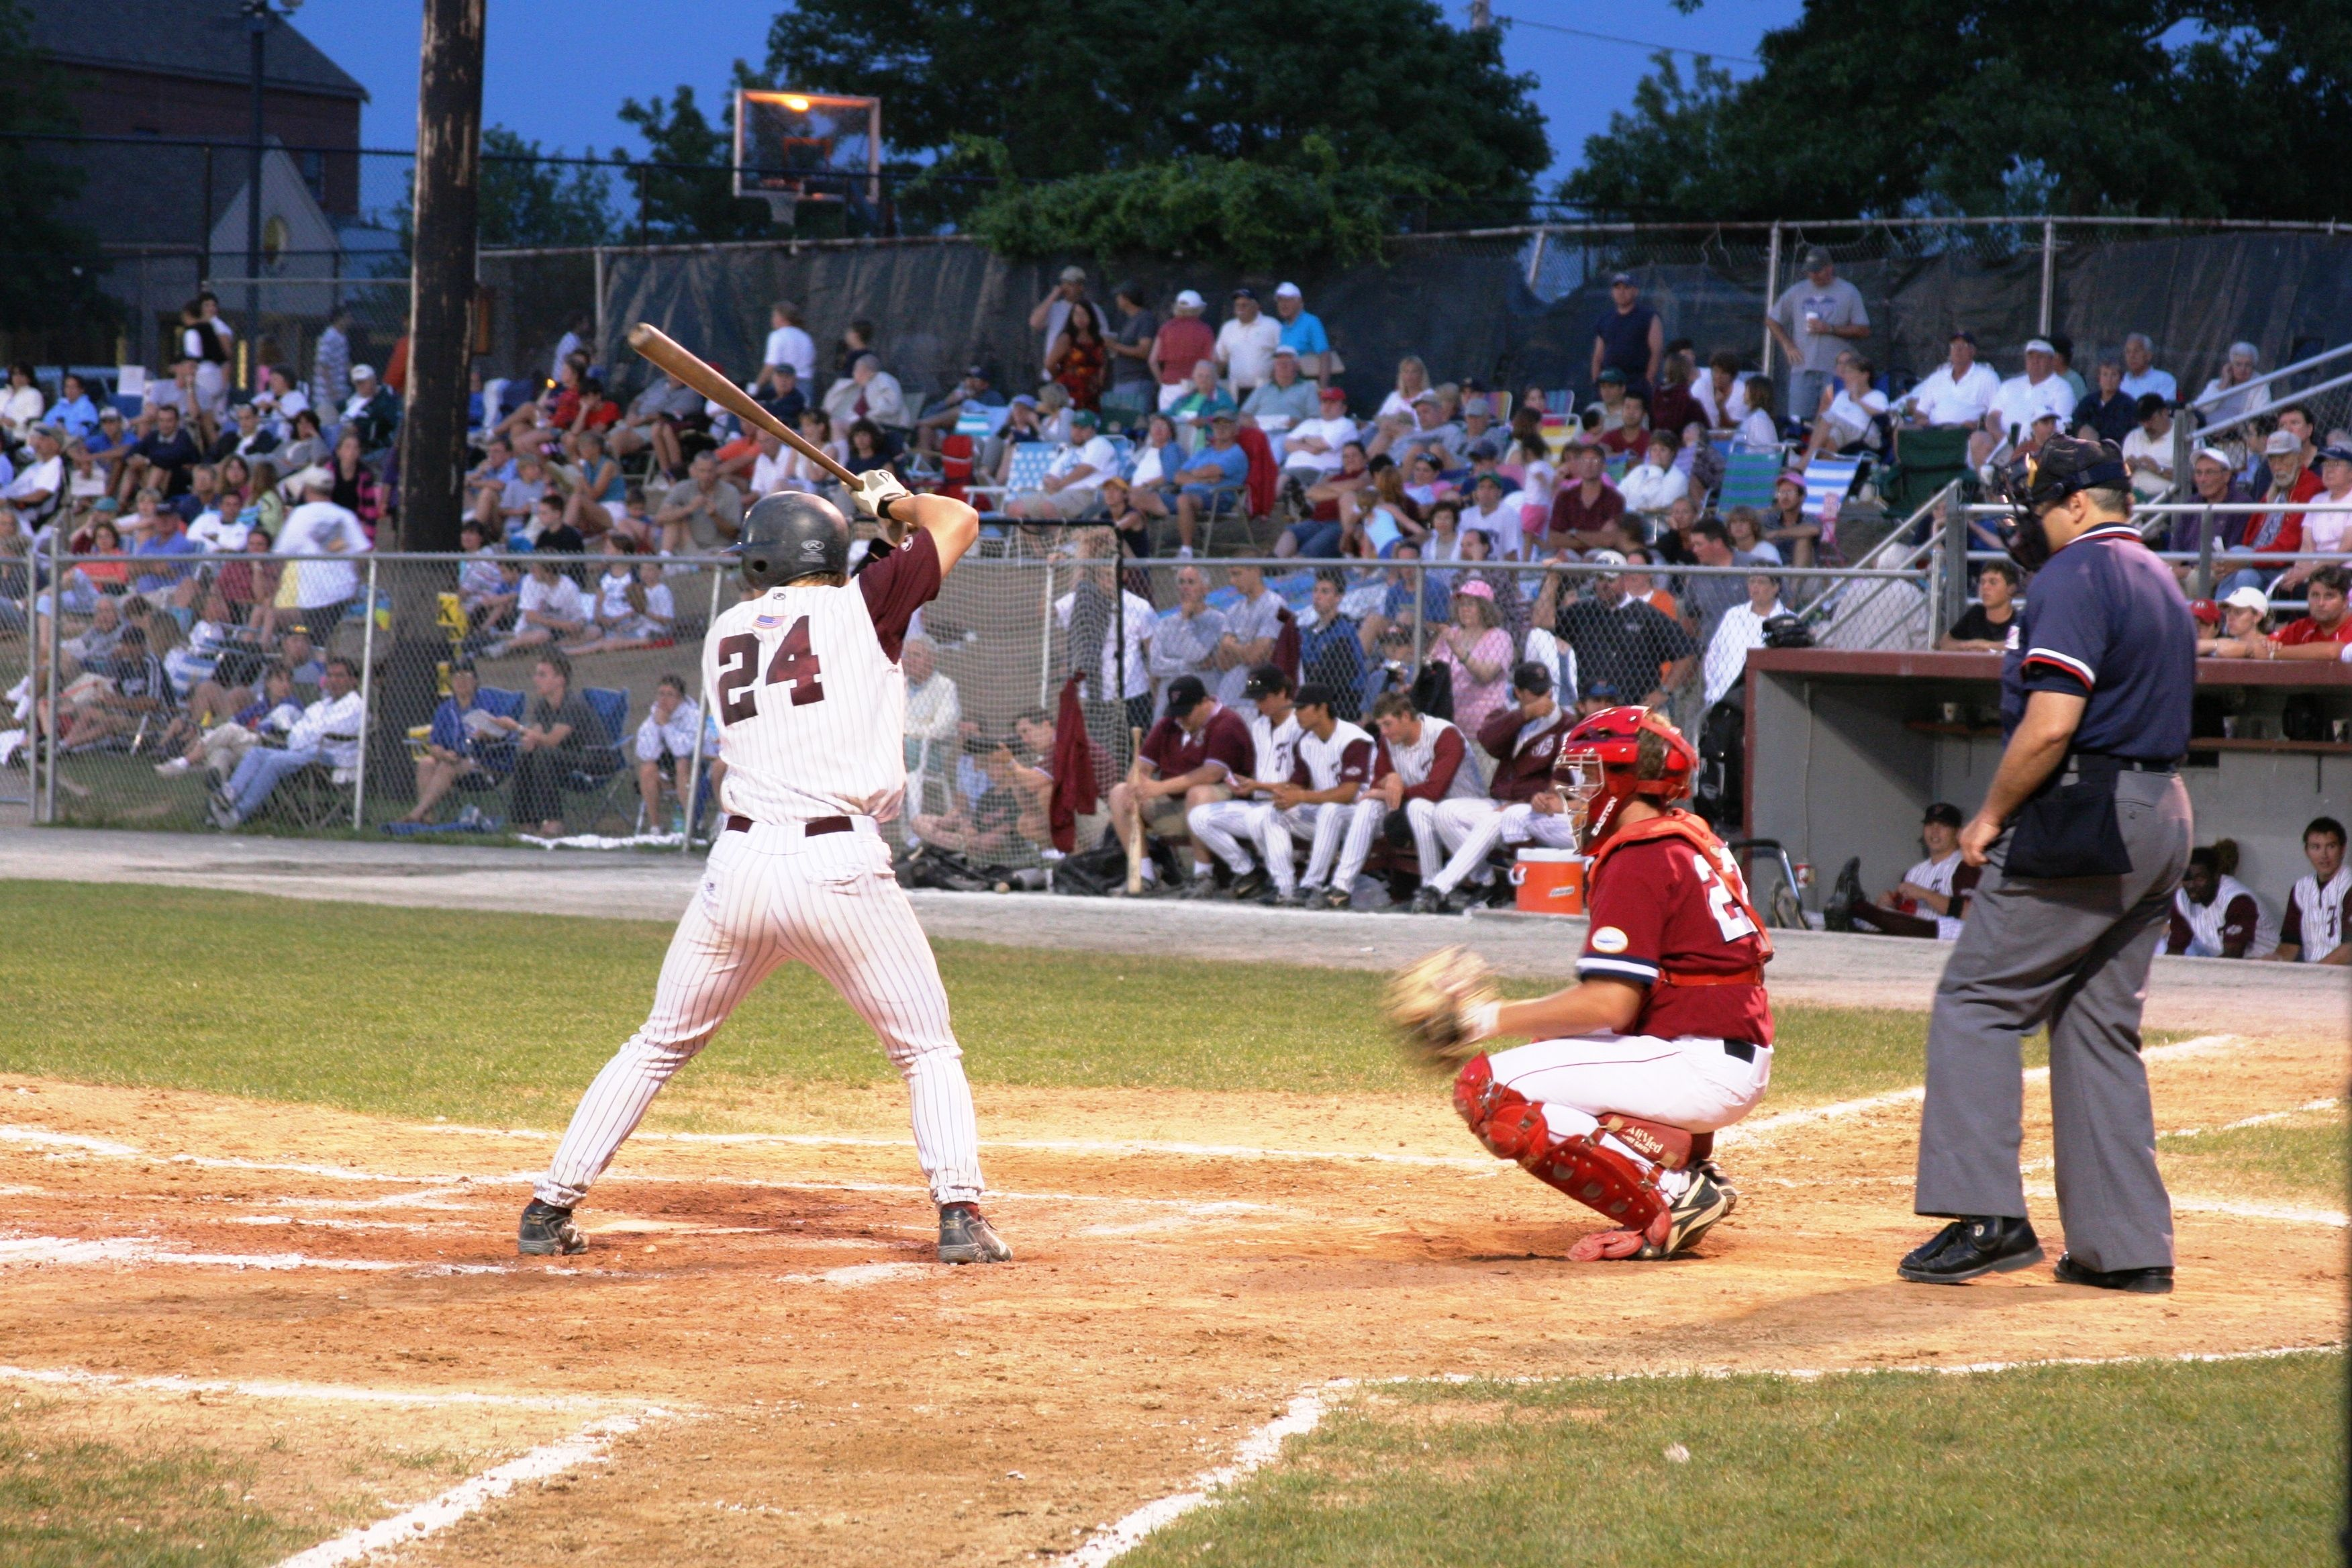 Cape Cod Baseball Summer League Games Splendidsummer New England Style Commodores Falmouth